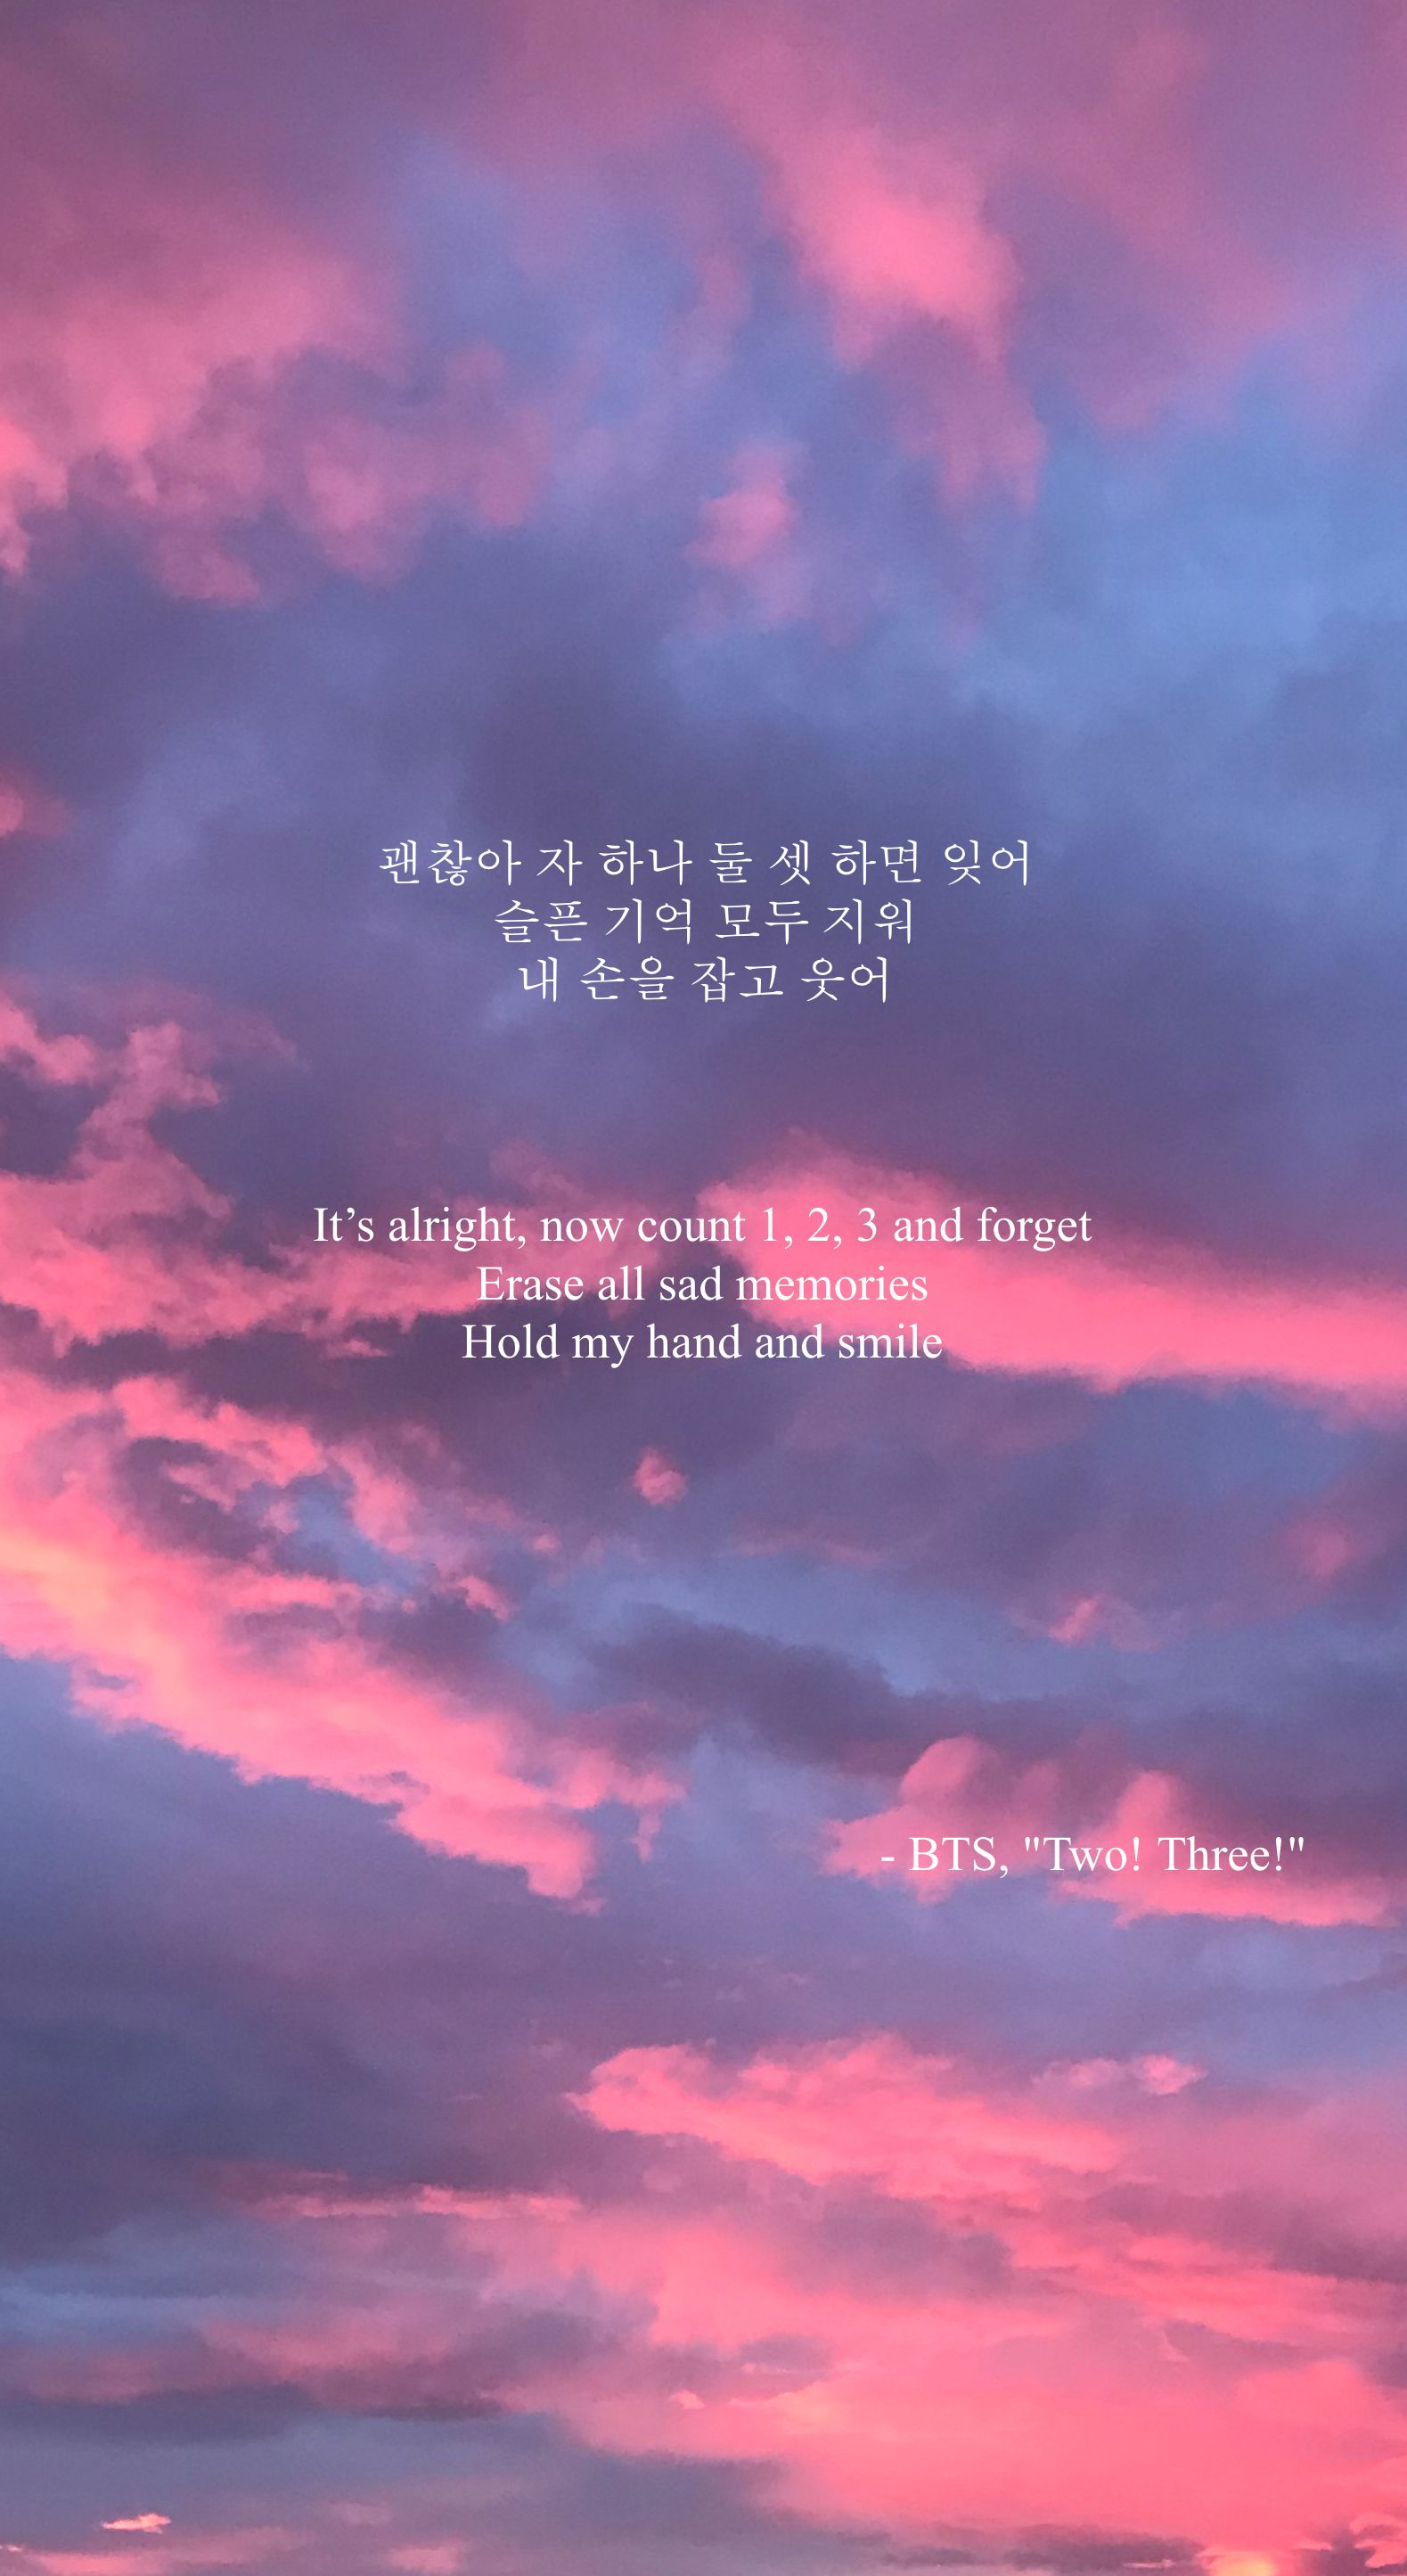 Pin By Yari On Kpop Wallpapers In 2019 Bts Lyrics Quotes